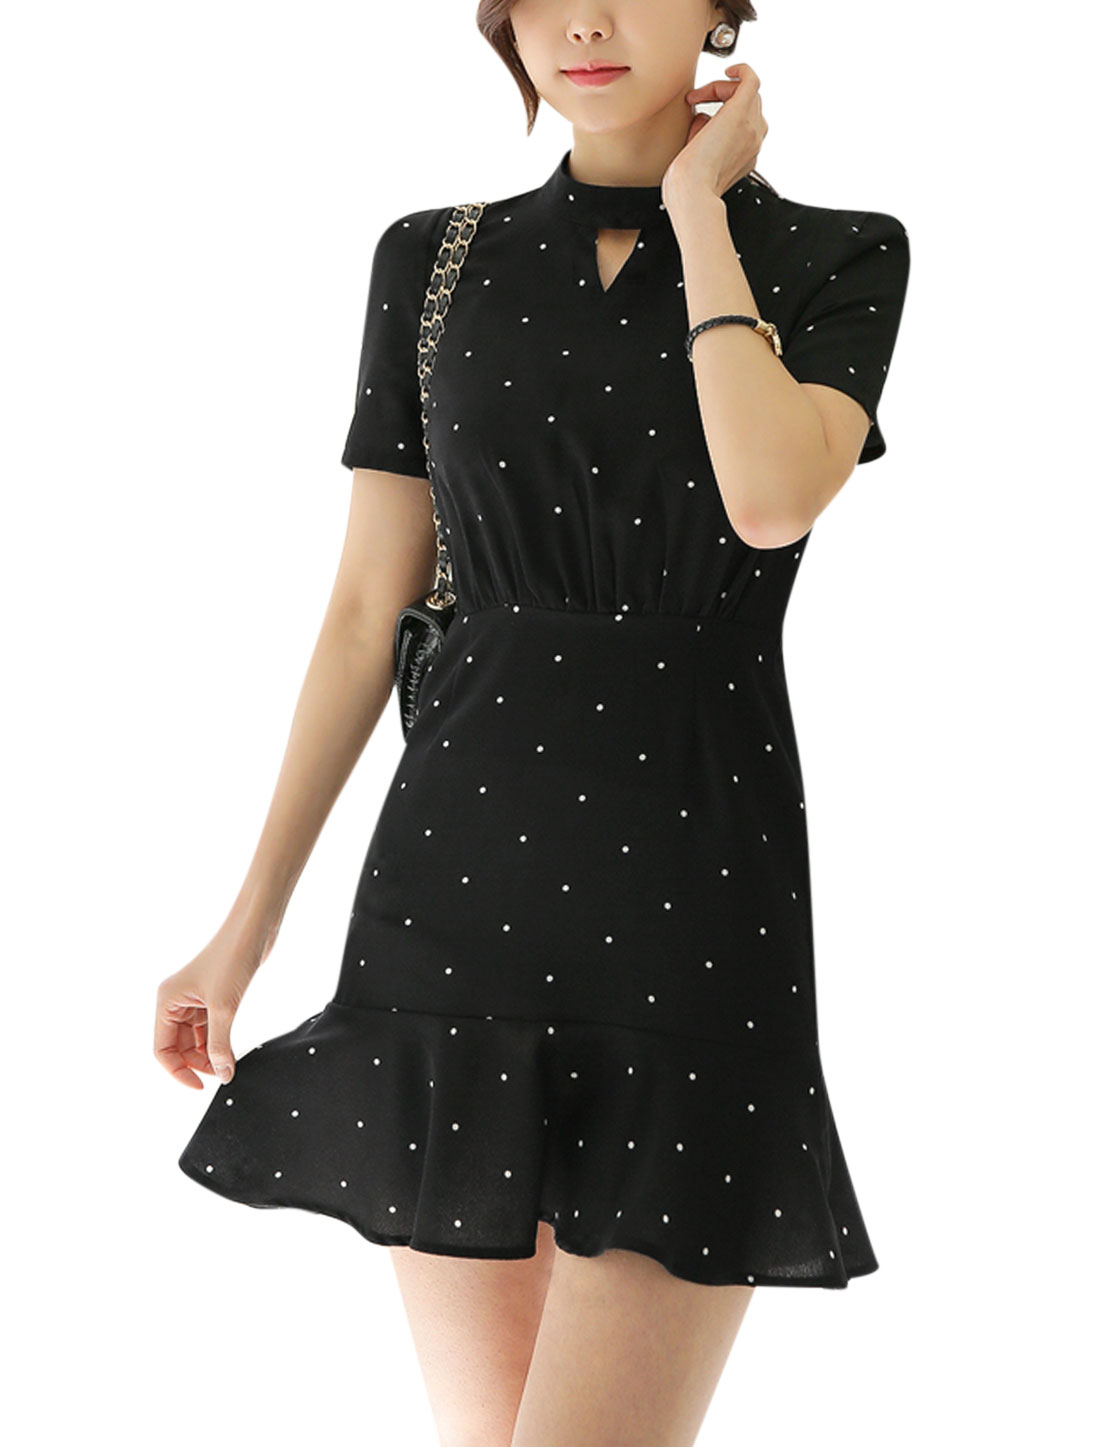 Women Dots Prints Stand Collar Flouncing Hem Cut Out Front Dress Black L